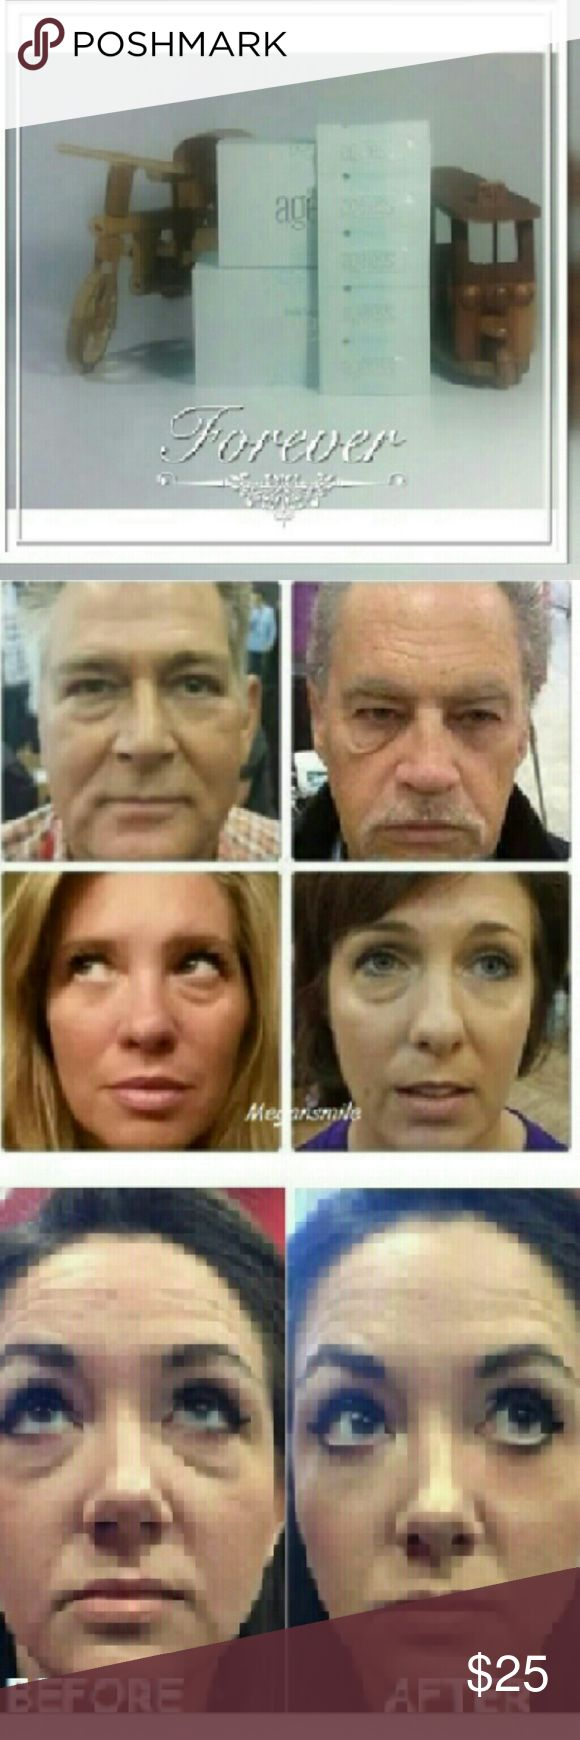 10 sachets - Instantly Ageless Just Try It Amazing LOOK 10 Years Younger ! *Work in 2 minutes or less *Results last 6-8 hours/ time *Each application provides 1-3 time *Each sachet is 0.3 ml BENEFIT  -Reduce the appearance of under-eye bags immediately -Visibly diminishes the appearance of fine lines and wrinkles -Tighten,firm and lift the appearance of sagging skin Receive : 10 sachets Jeuness Makeup Eye Primer